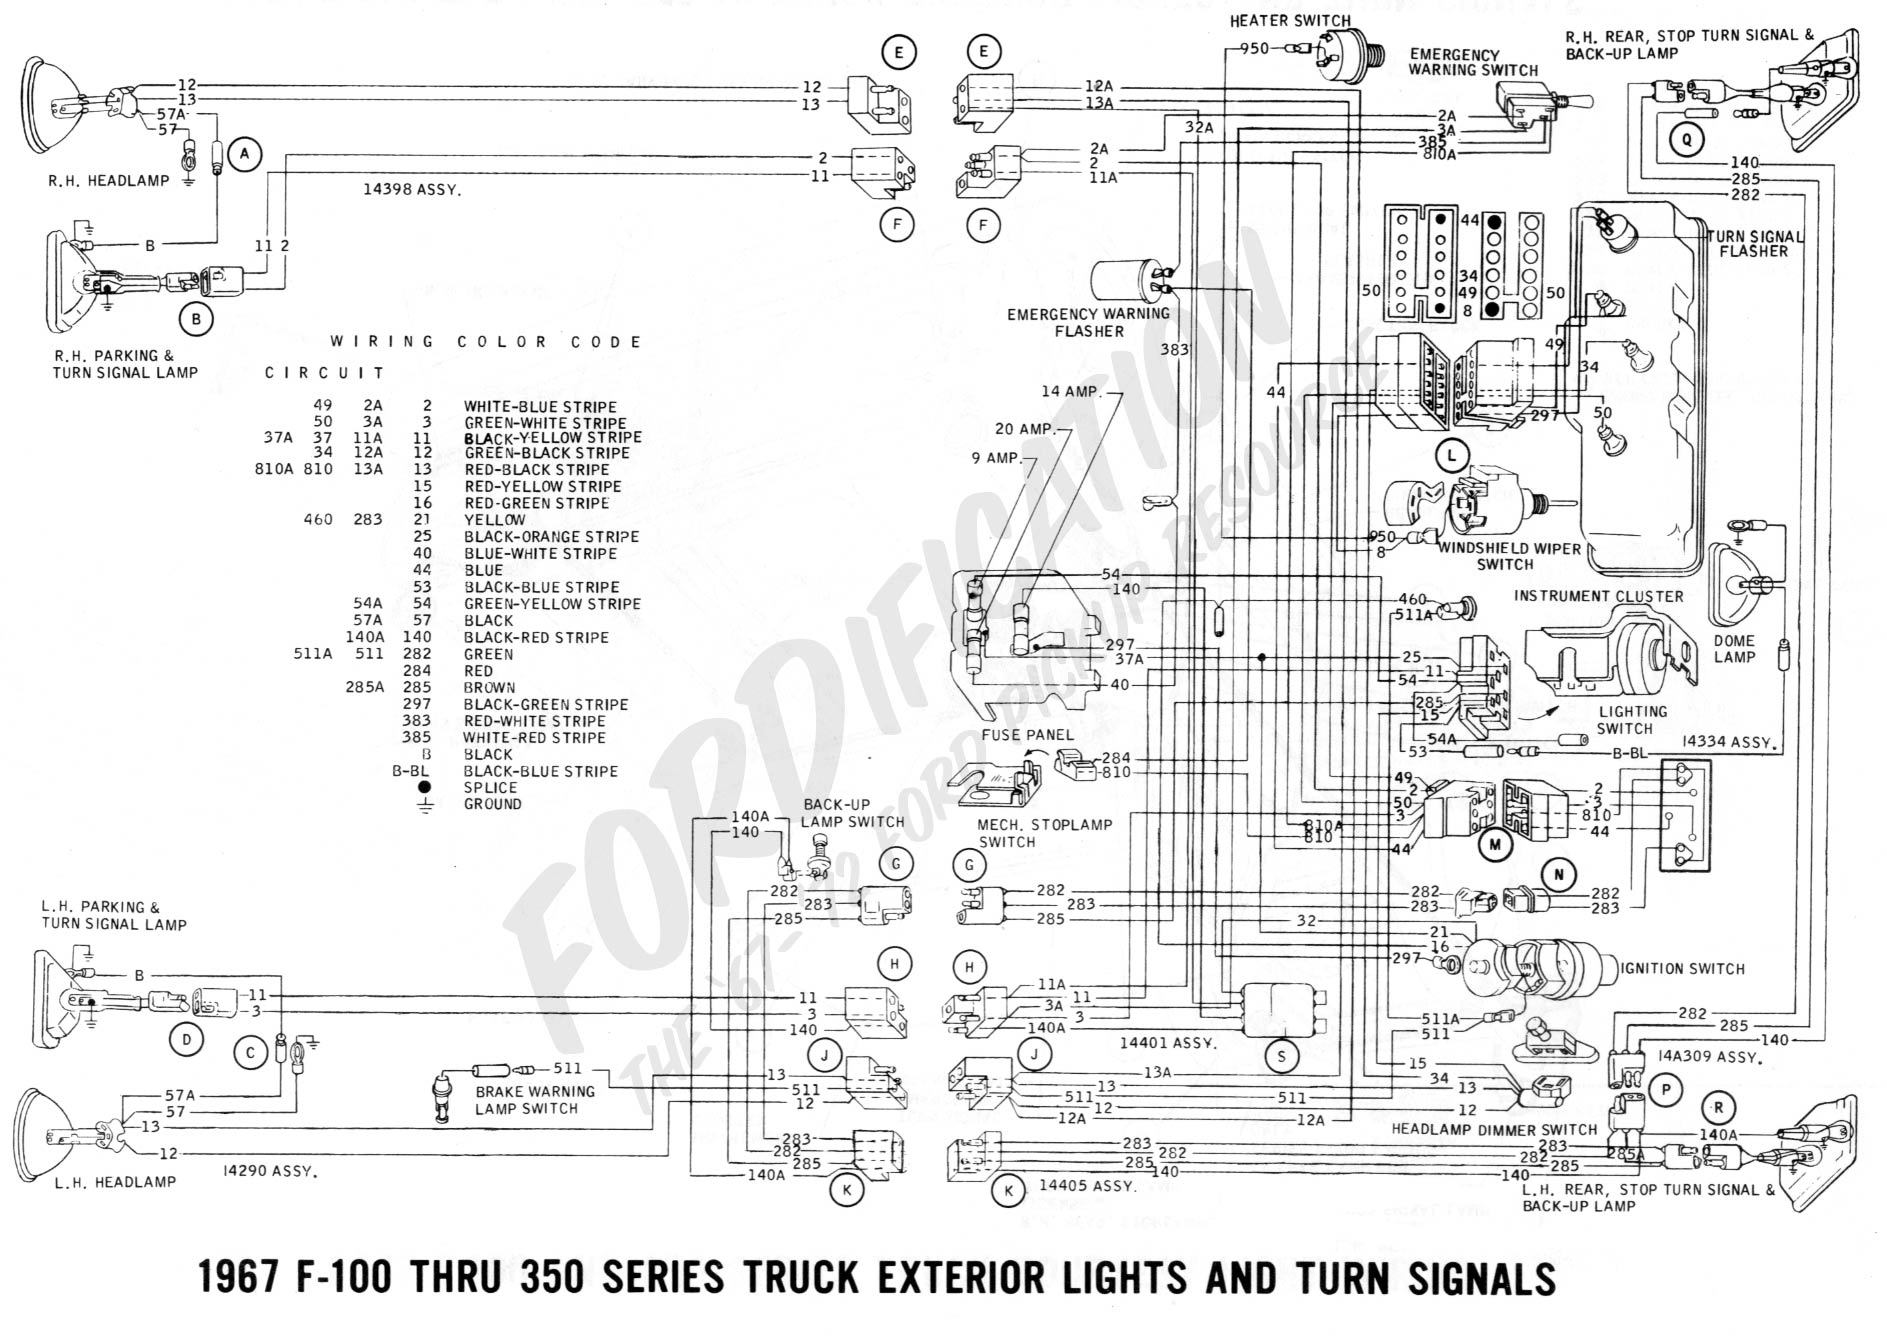 80 1967_exterior_lights_and_turn_signals_page_2_1db6c529c4c9567560e56d6320f993290ba5b803 66 mustang wiring diagram 1966 mustang dash wiring diagram 1966 ford truck wiring diagram at nearapp.co